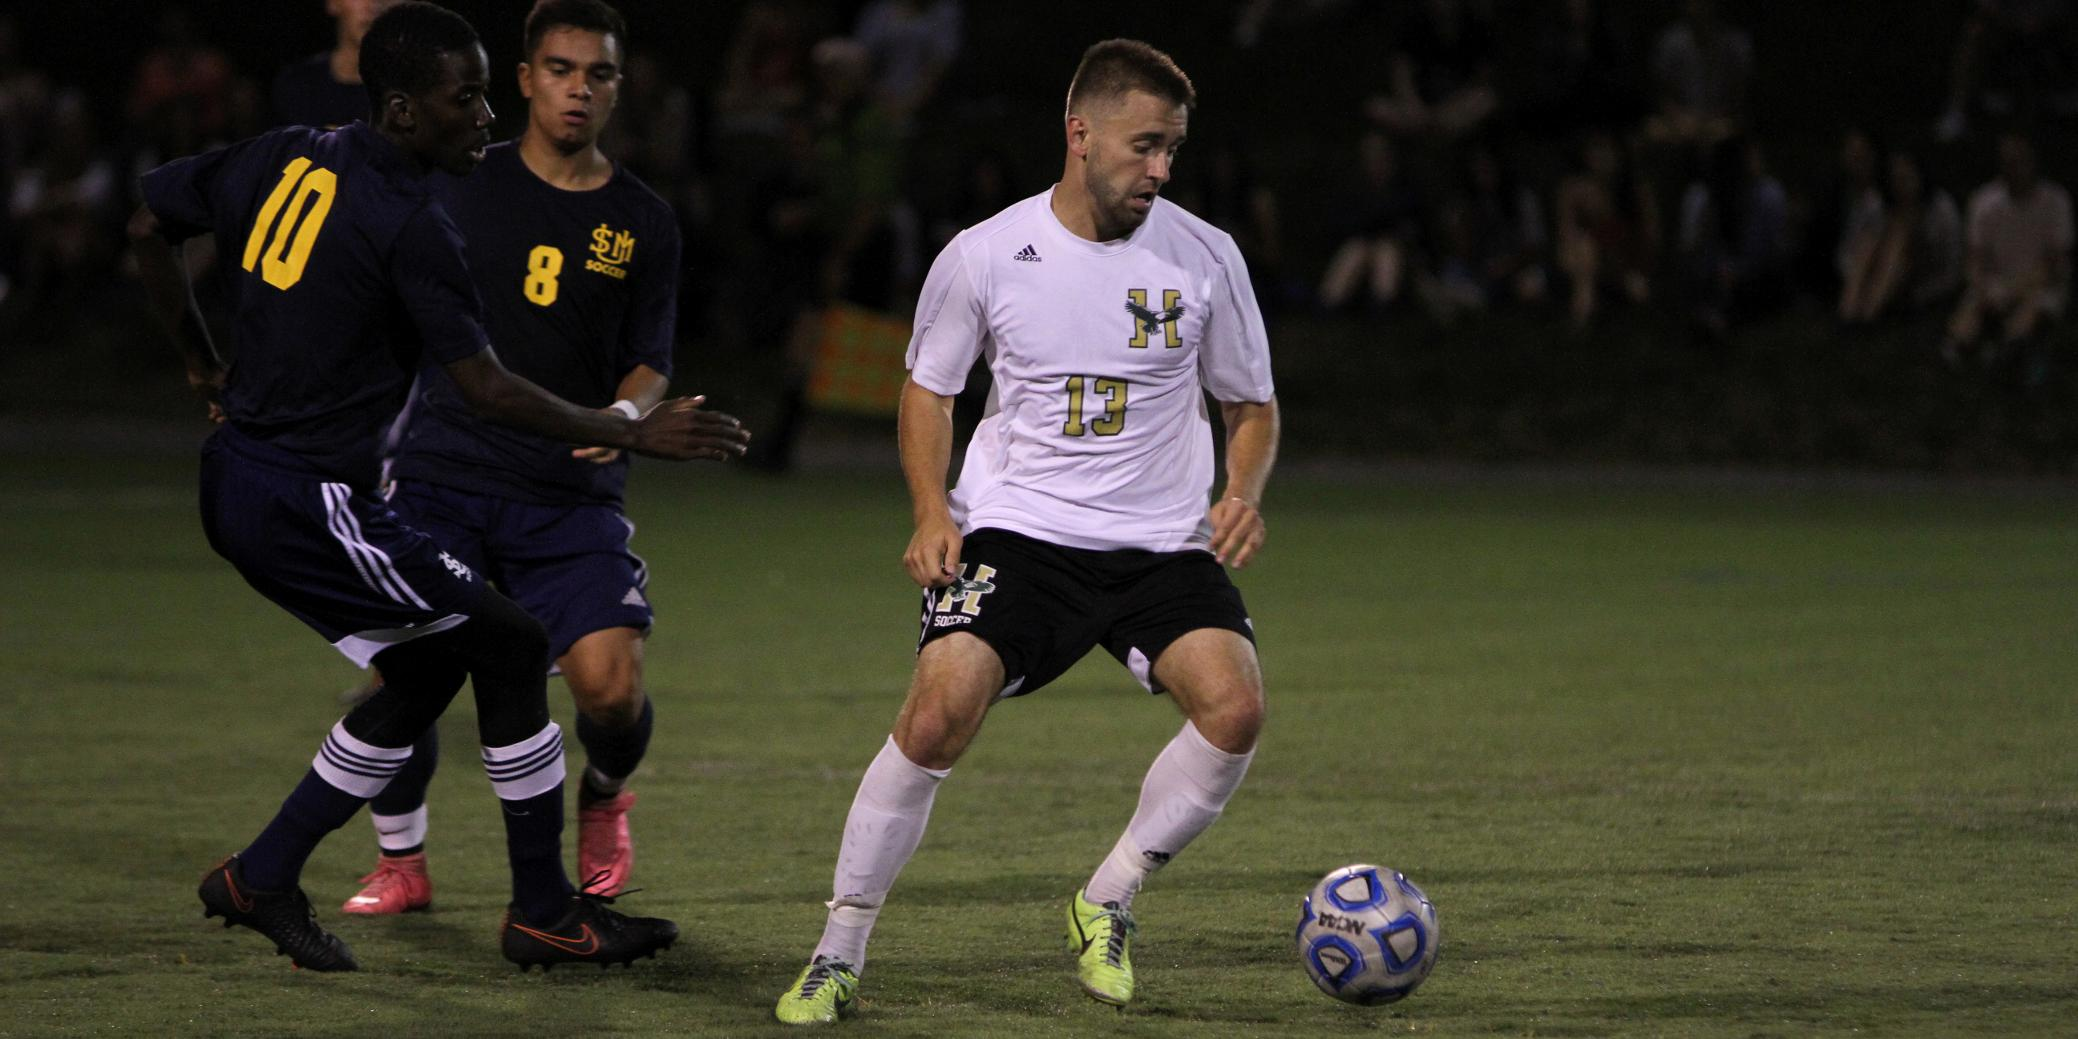 Eagles and Huskies Play to 1-1 Draw